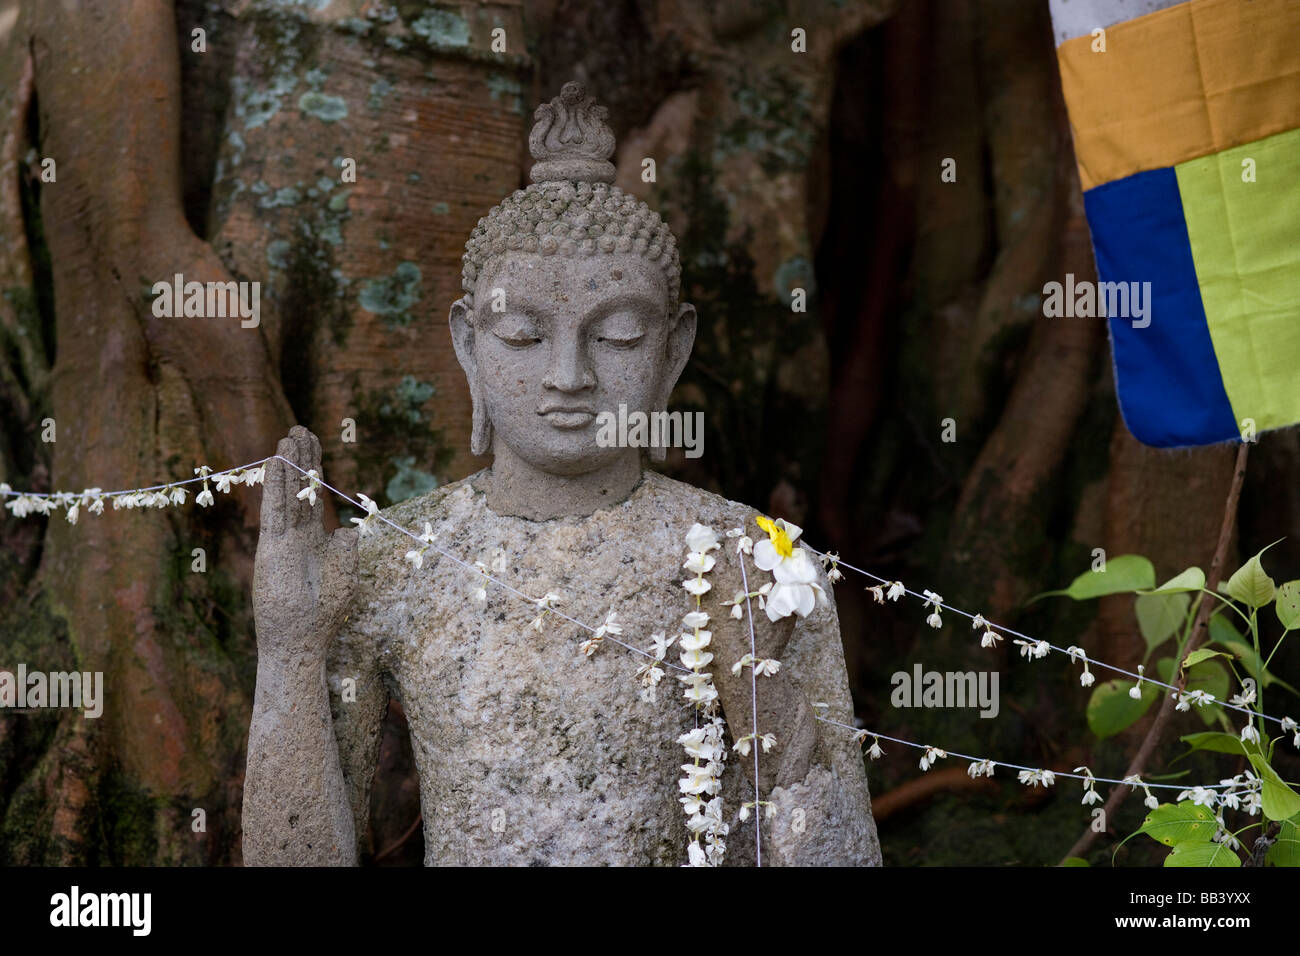 Buddha statue under the Bo, Bodhi, Tree inside the Gangarama, Gangaramaya, temple in Colombo, Sri Lanka. - Stock Image